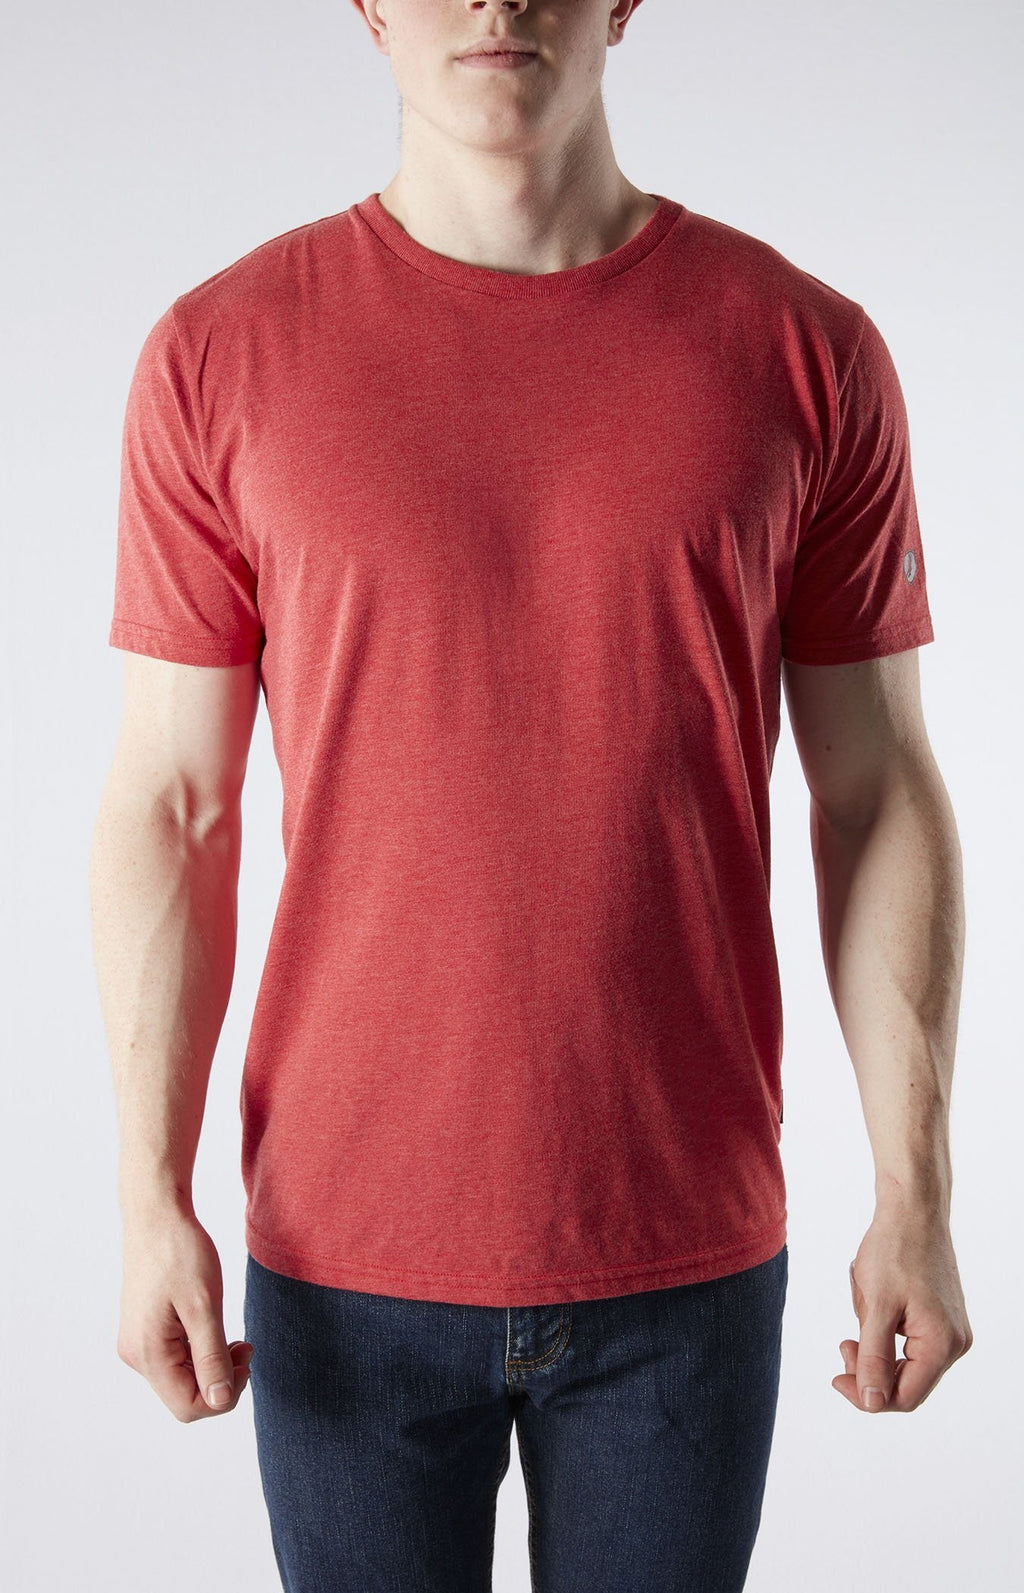 Blank Crew Neck Tee - Red